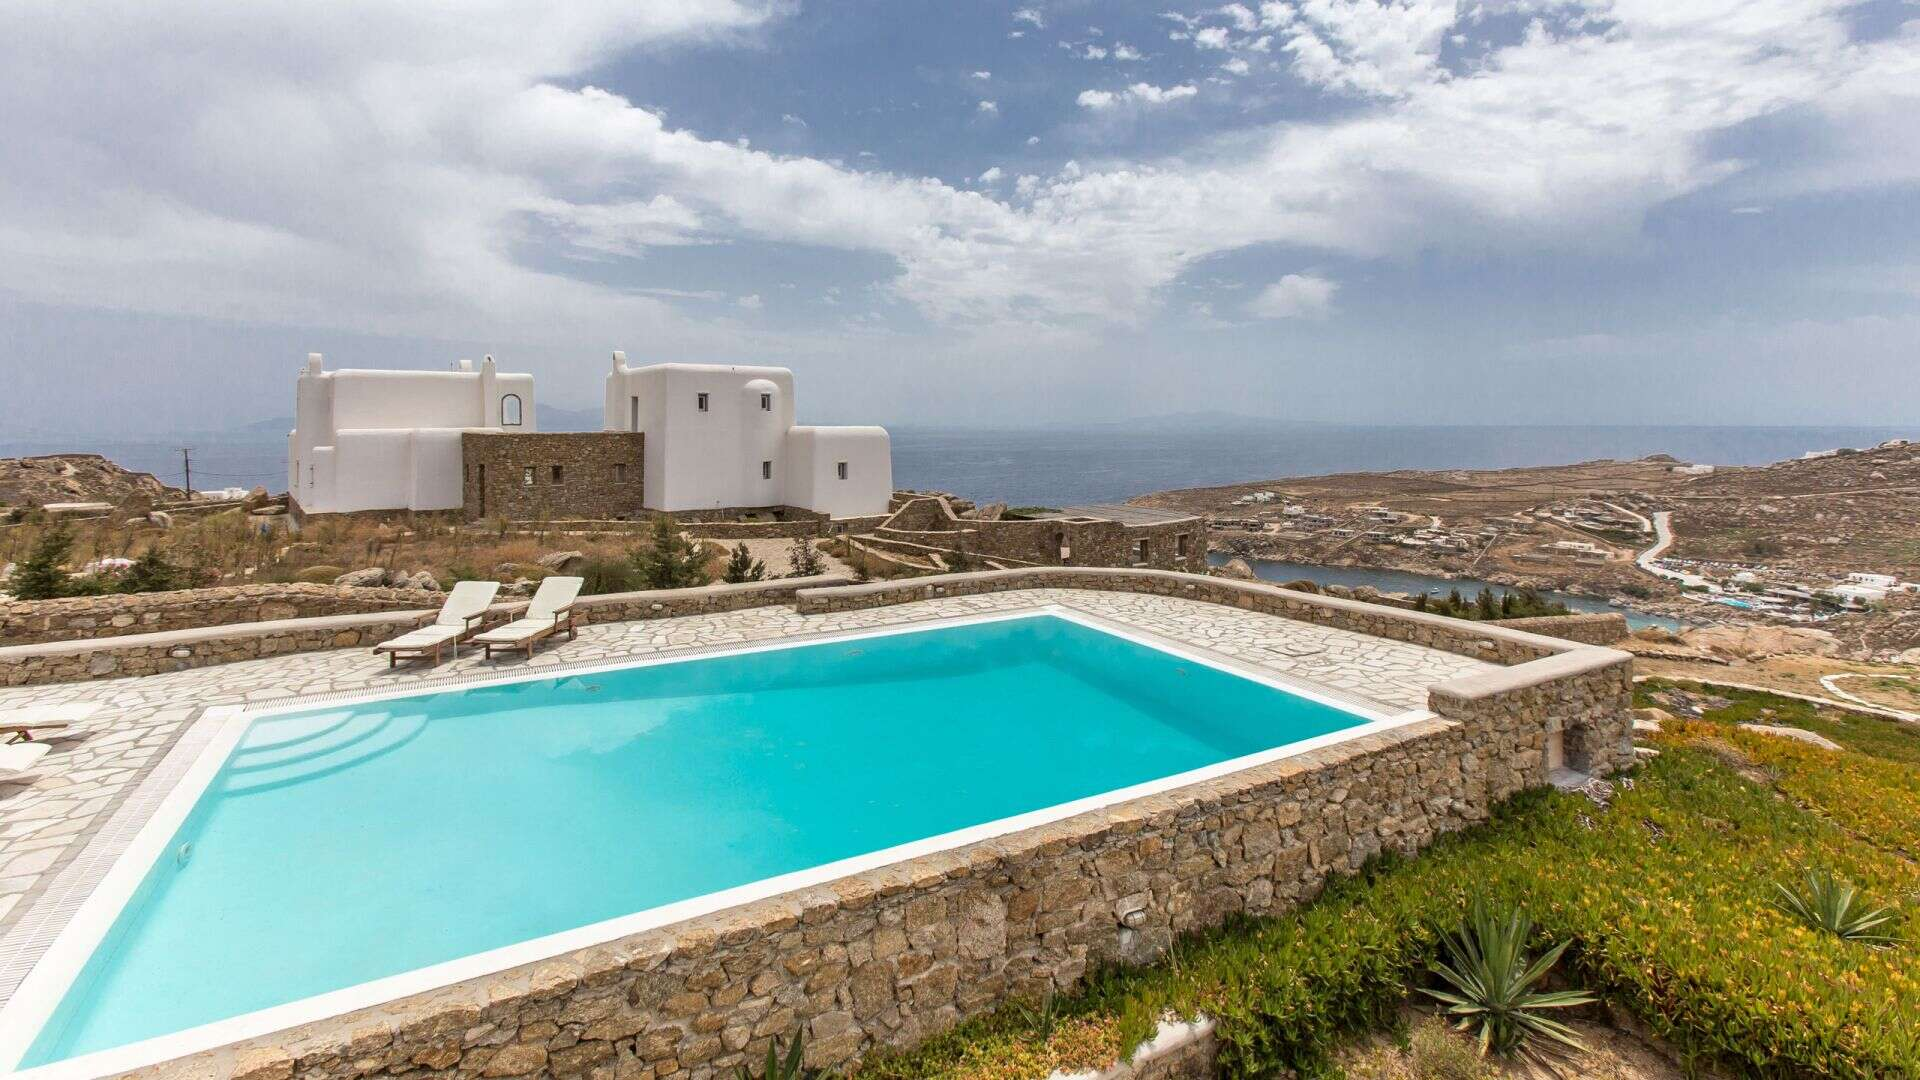 Luxury vacation rentals europe - Greece - Mykonos - Super Paradise 3 - Image 1/14